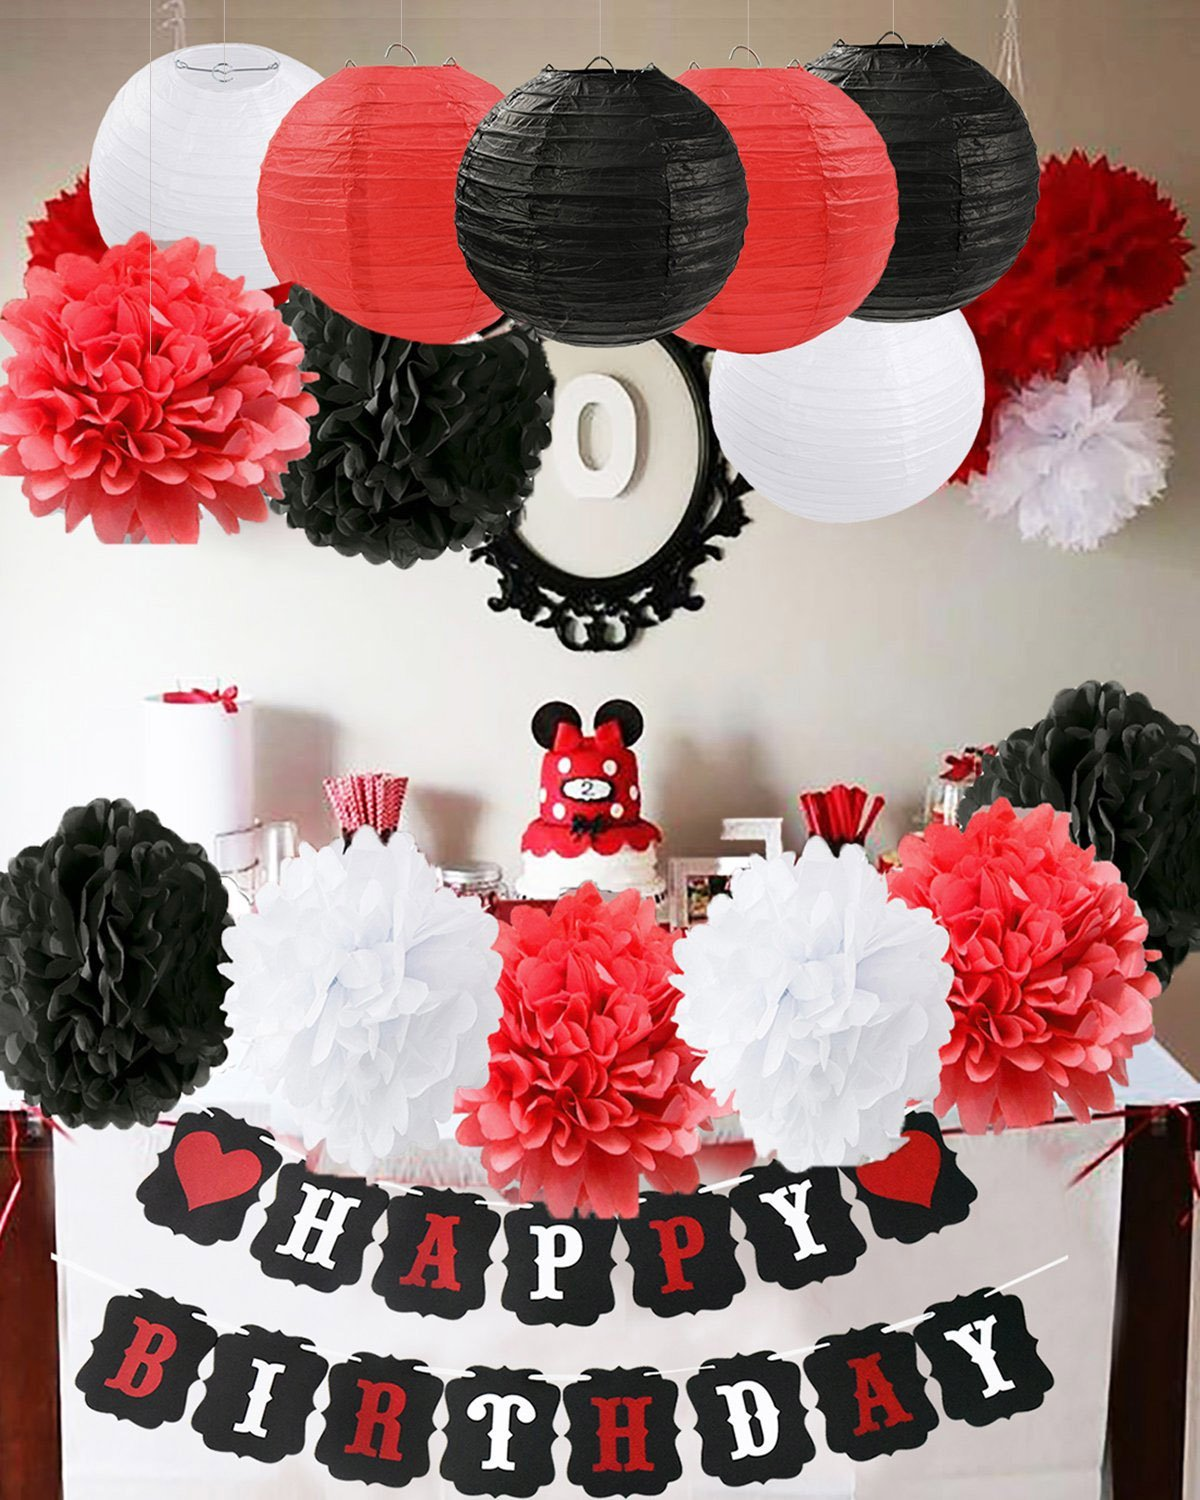 Furuix Mickey Mouse Birthday Party Decorations White Red Black Birthday Party Decorations Minnie Mouse Party Supplies Tissue Paper Pom Pom Flowers Paper Lanterns for Happy Birthday Decorations Baners